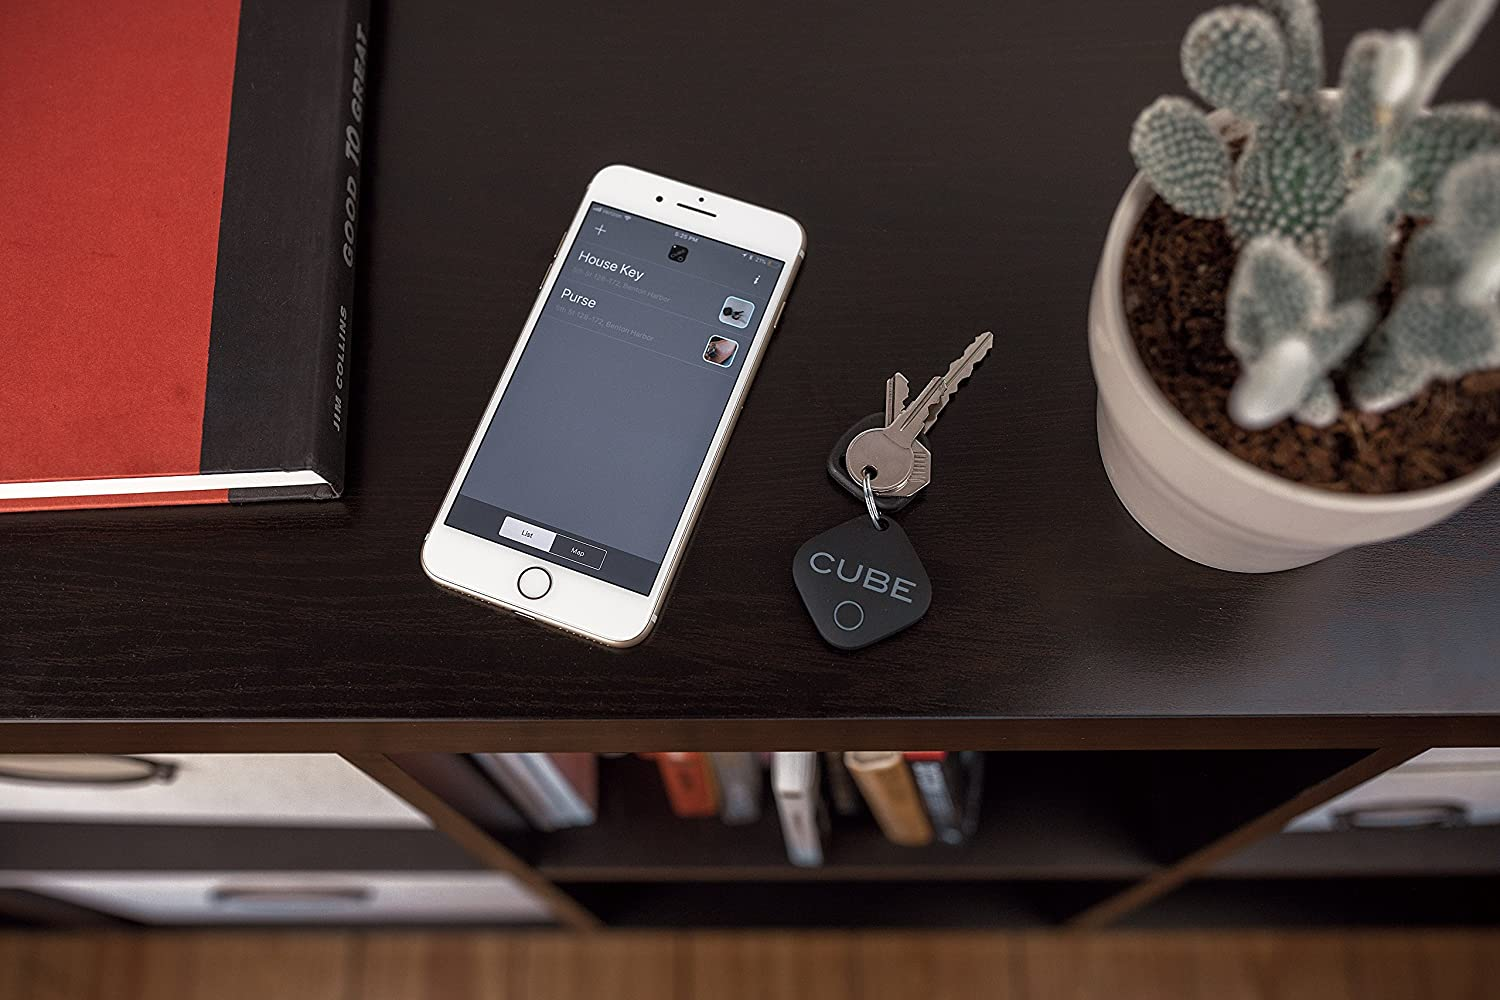 Cube Remote Key / Phone Finder